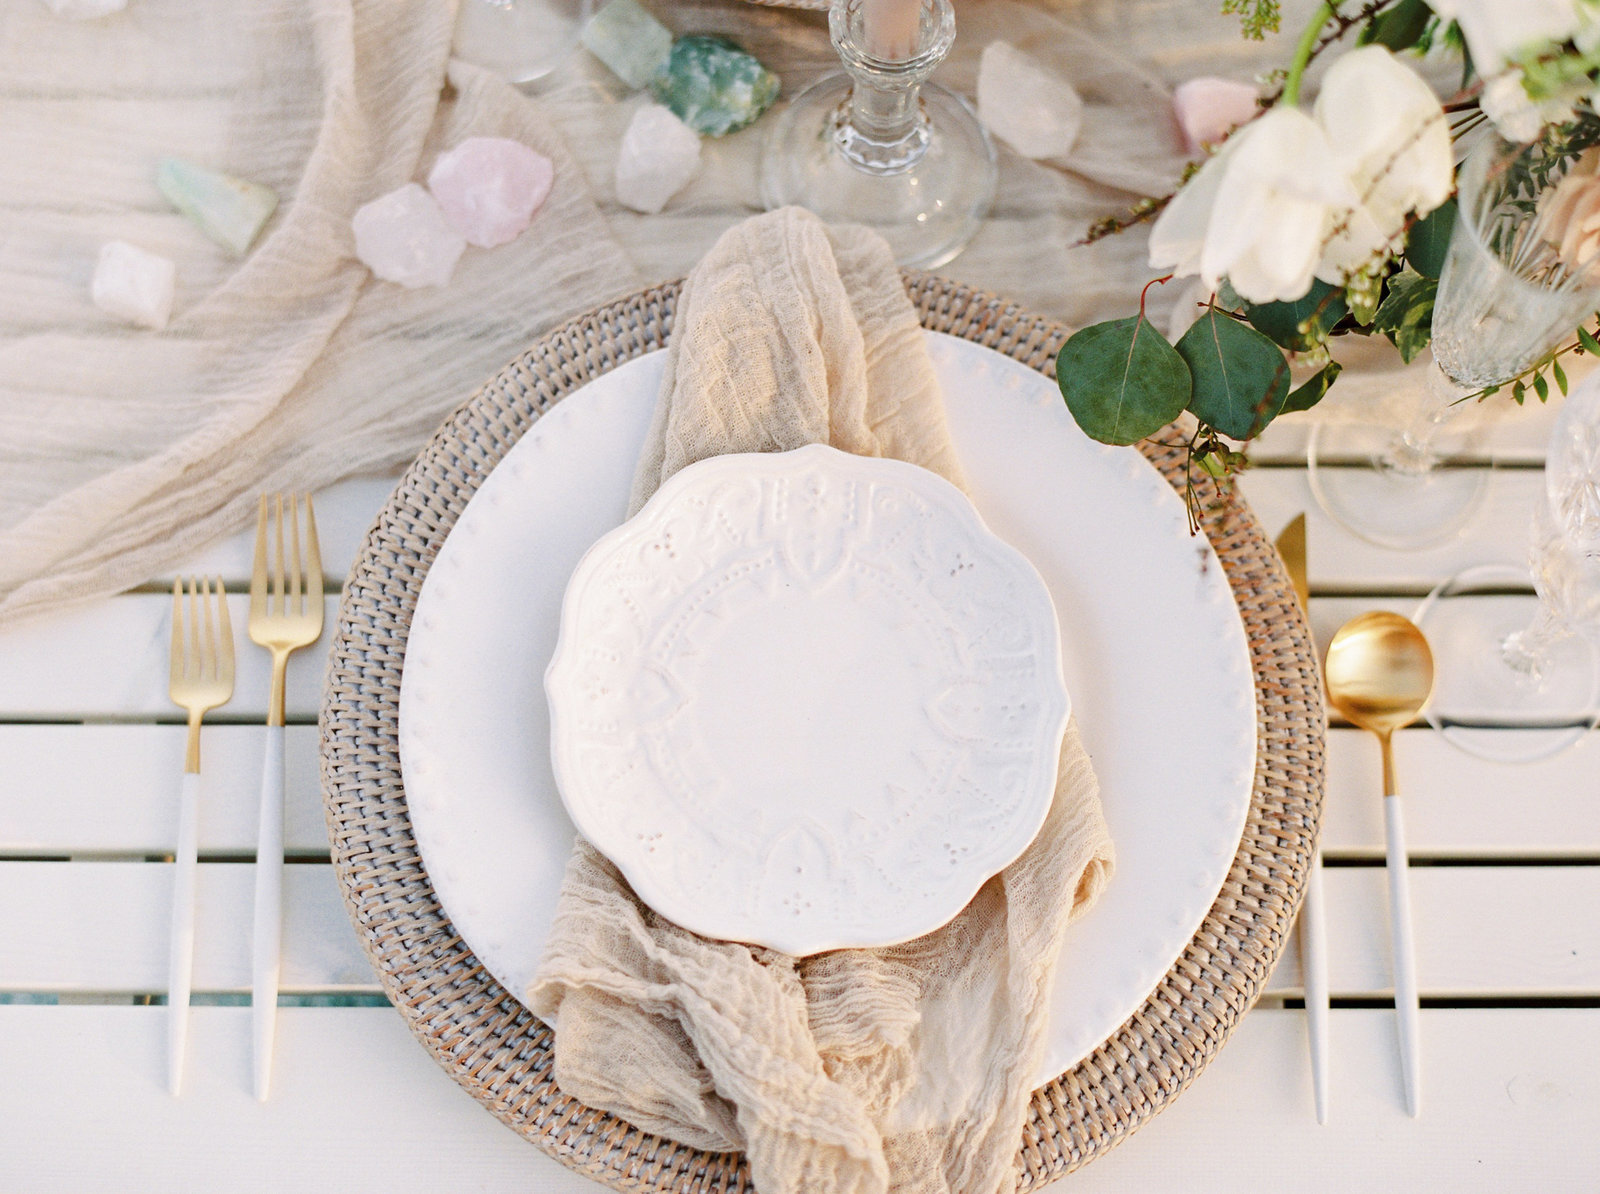 Plate-Occasions-Toronto-Charger-Plate-Rentals